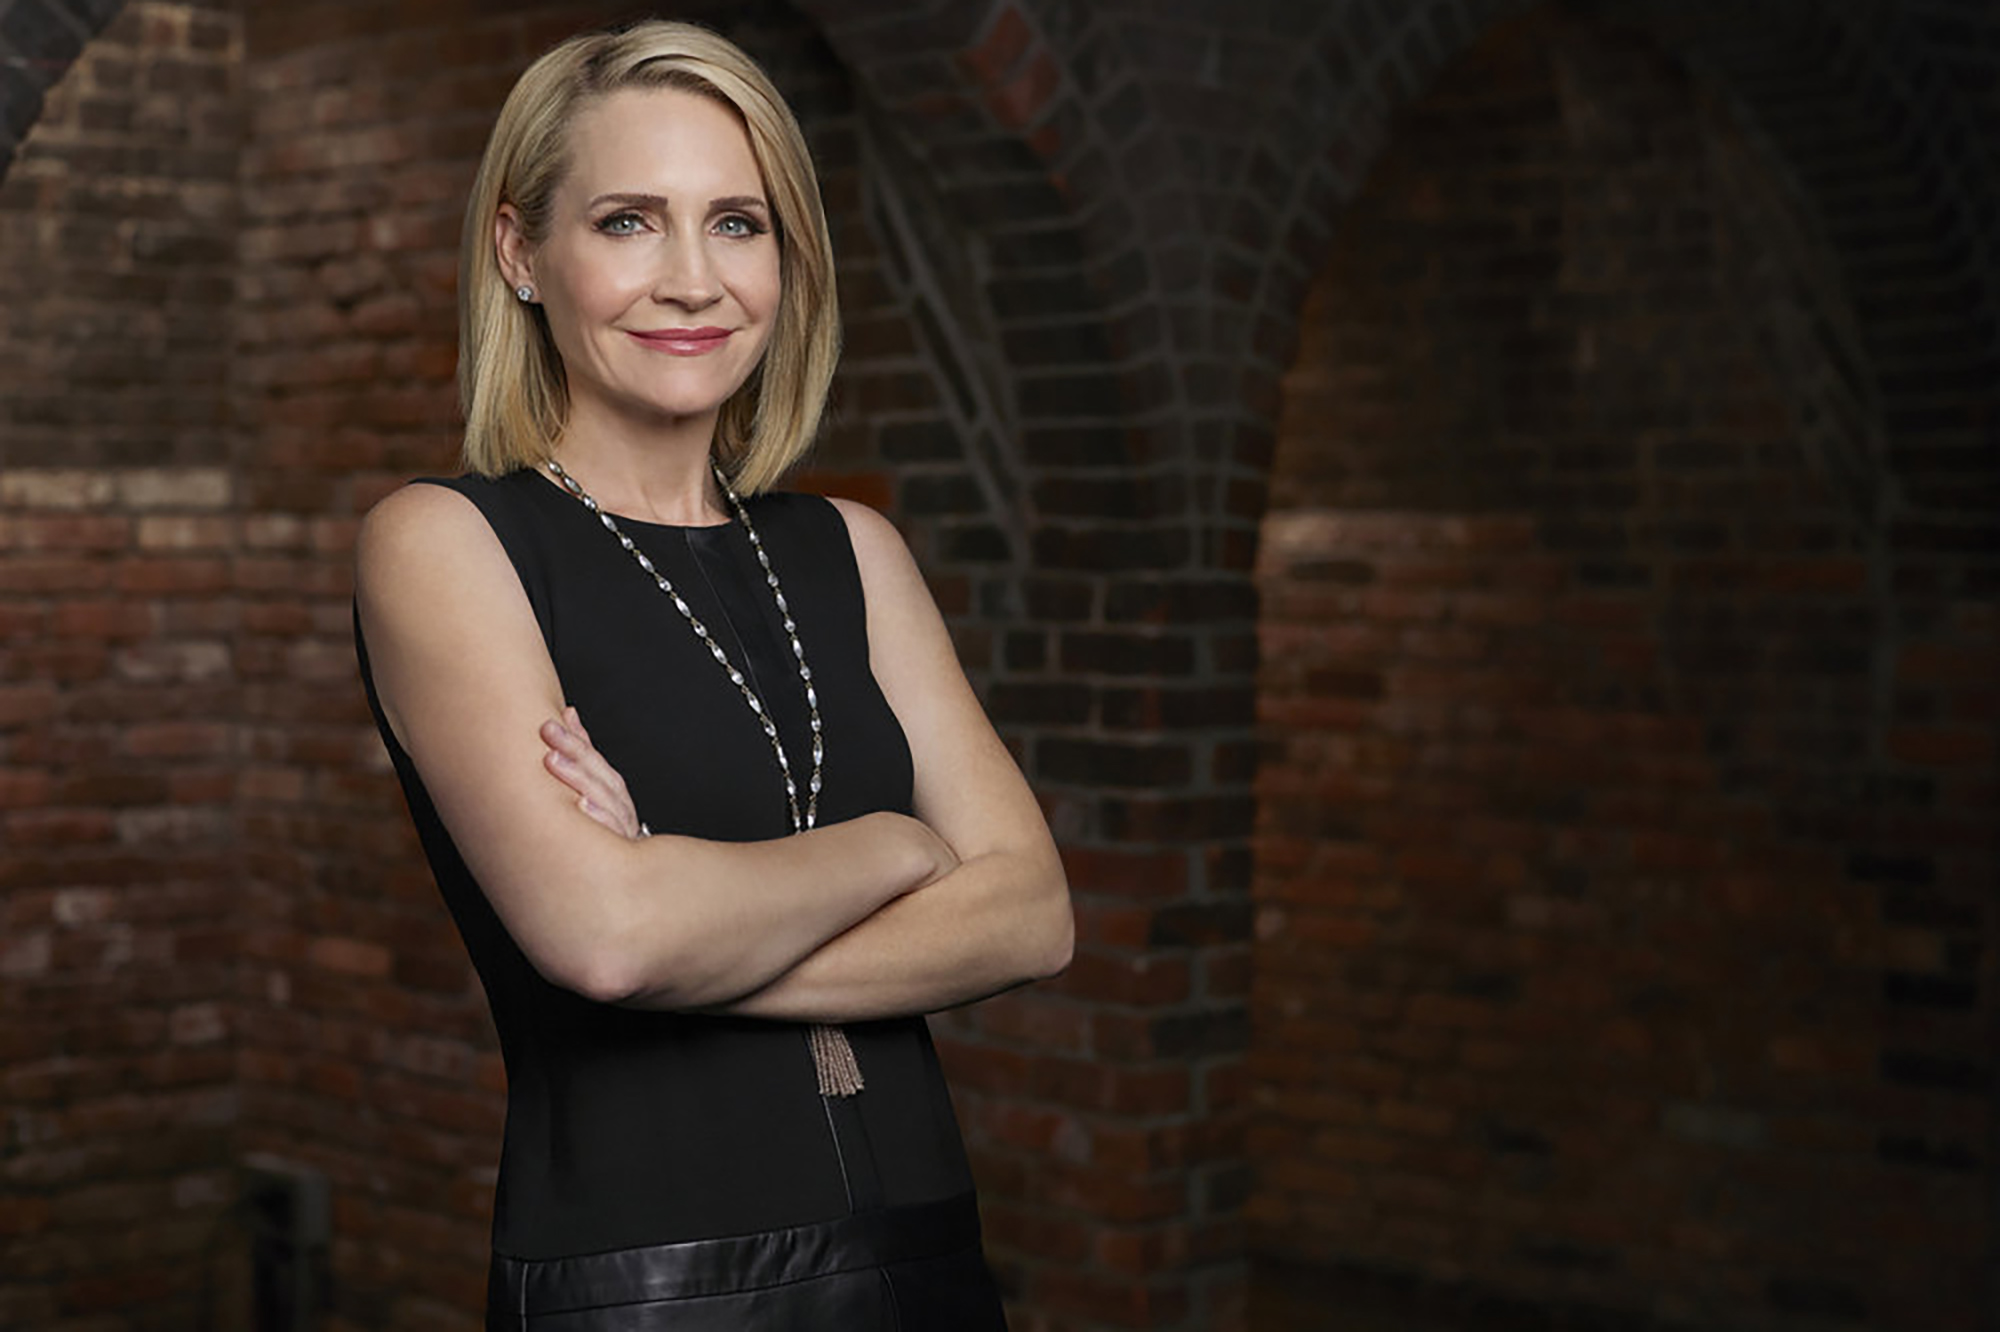 'Dateline's' Andrea Canning also writes Lifetime and Hallmark movies